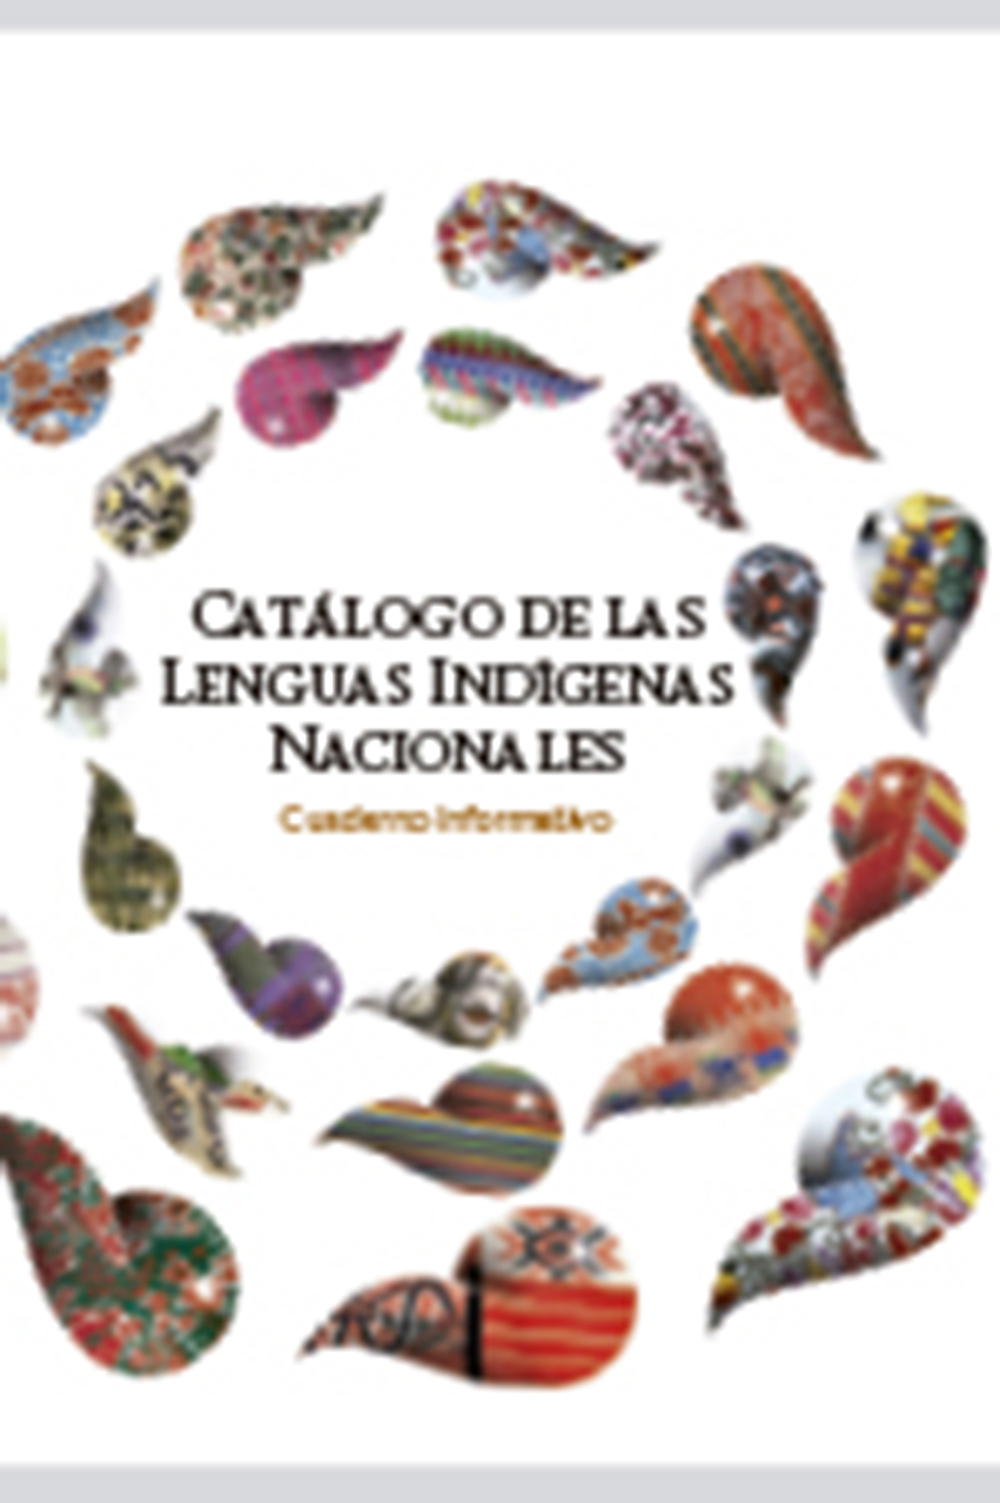 cuadernillo catalogo de lenguas indigenas